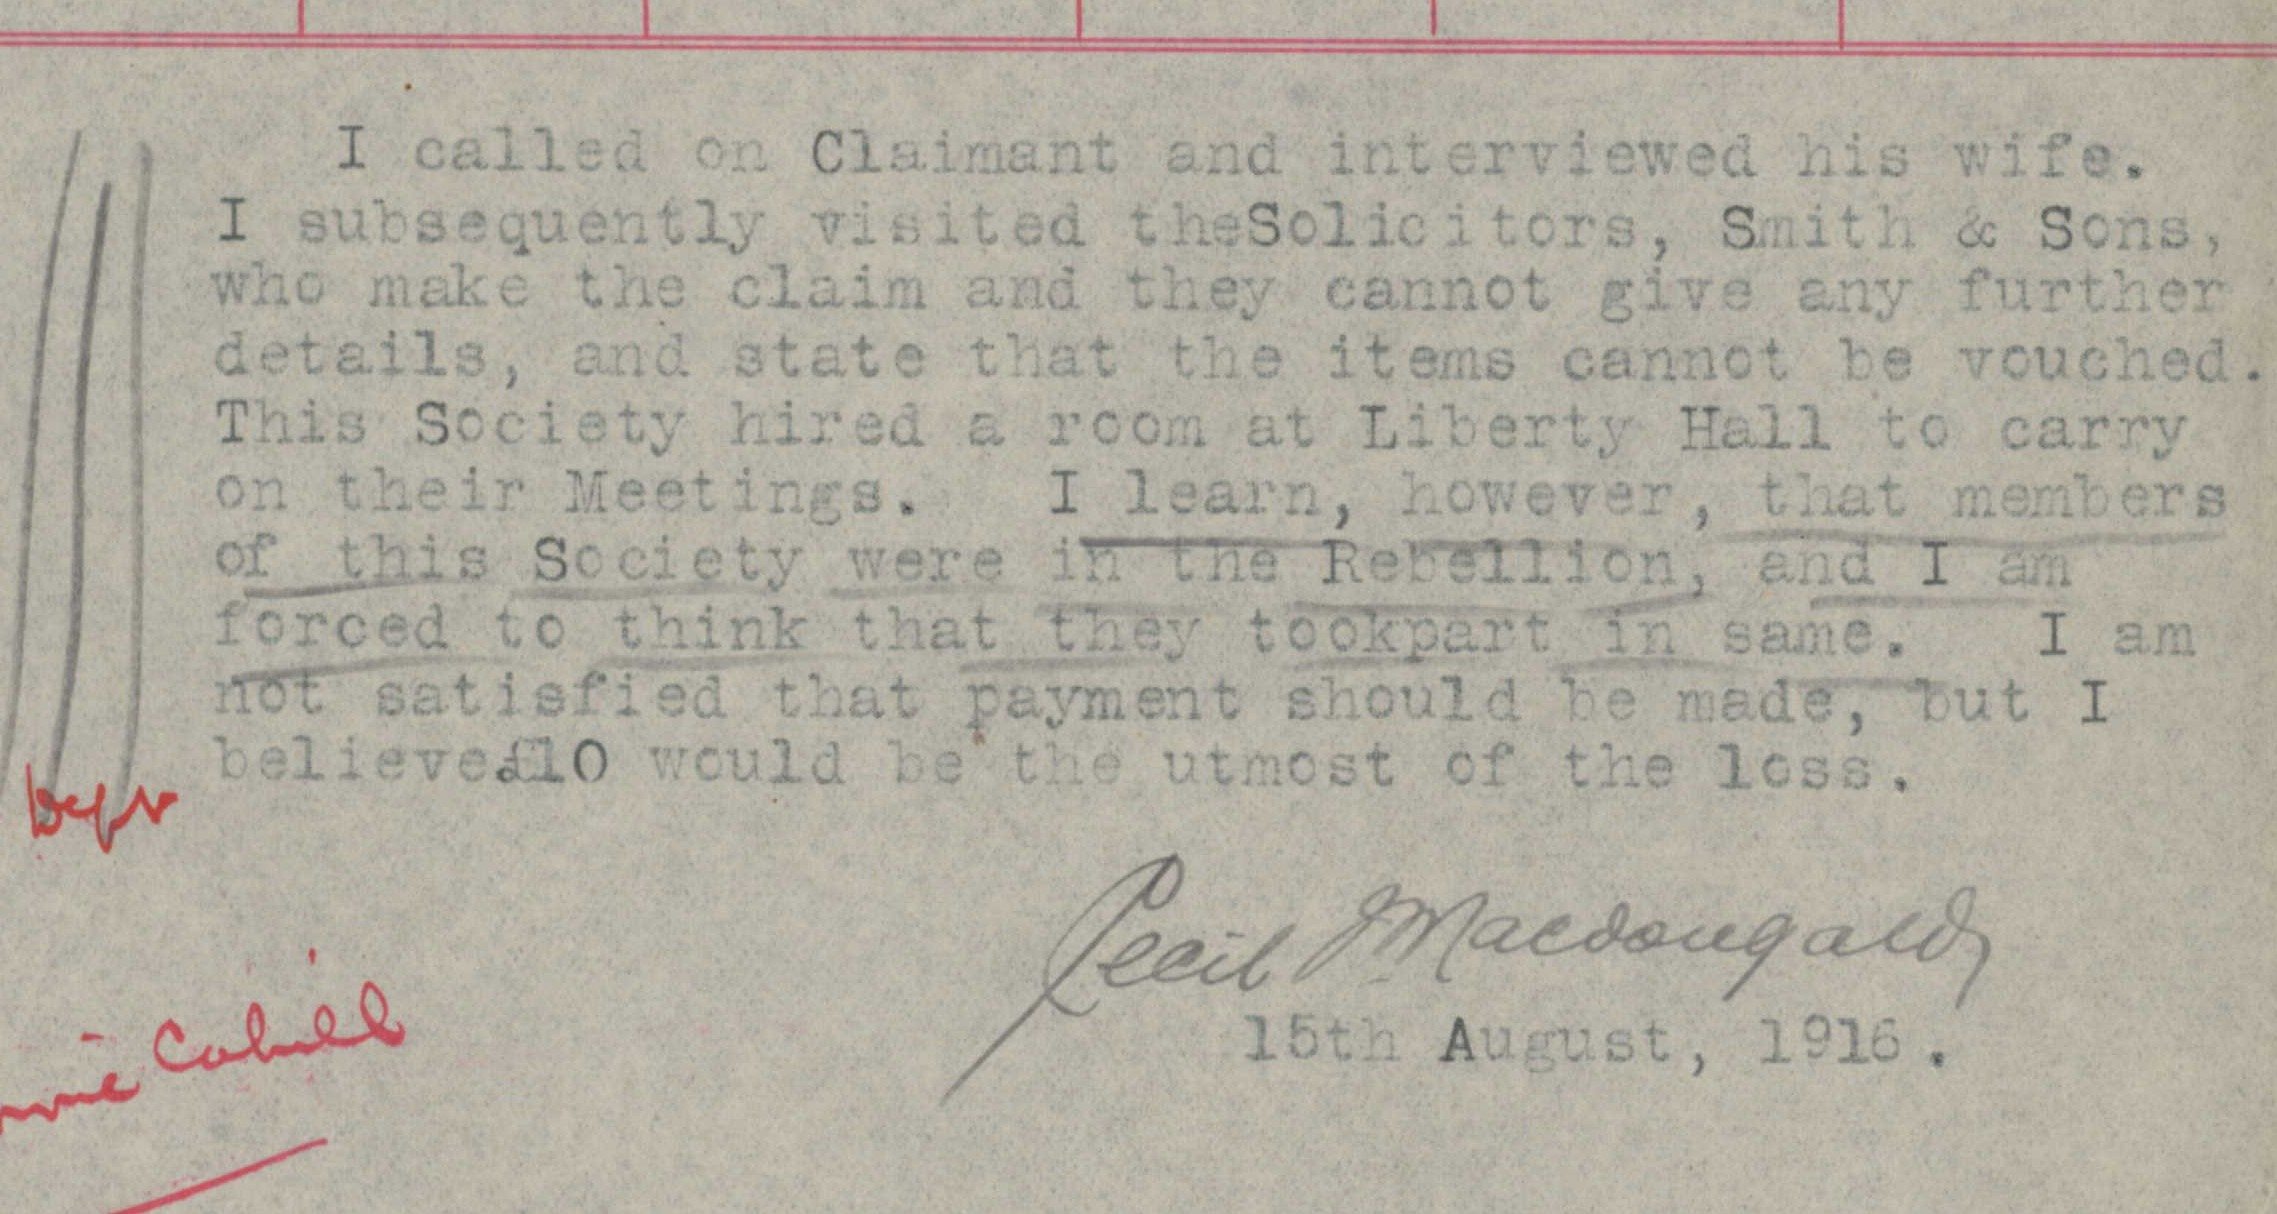 Rejection of compensation claim (Image courtesy: National Archives)